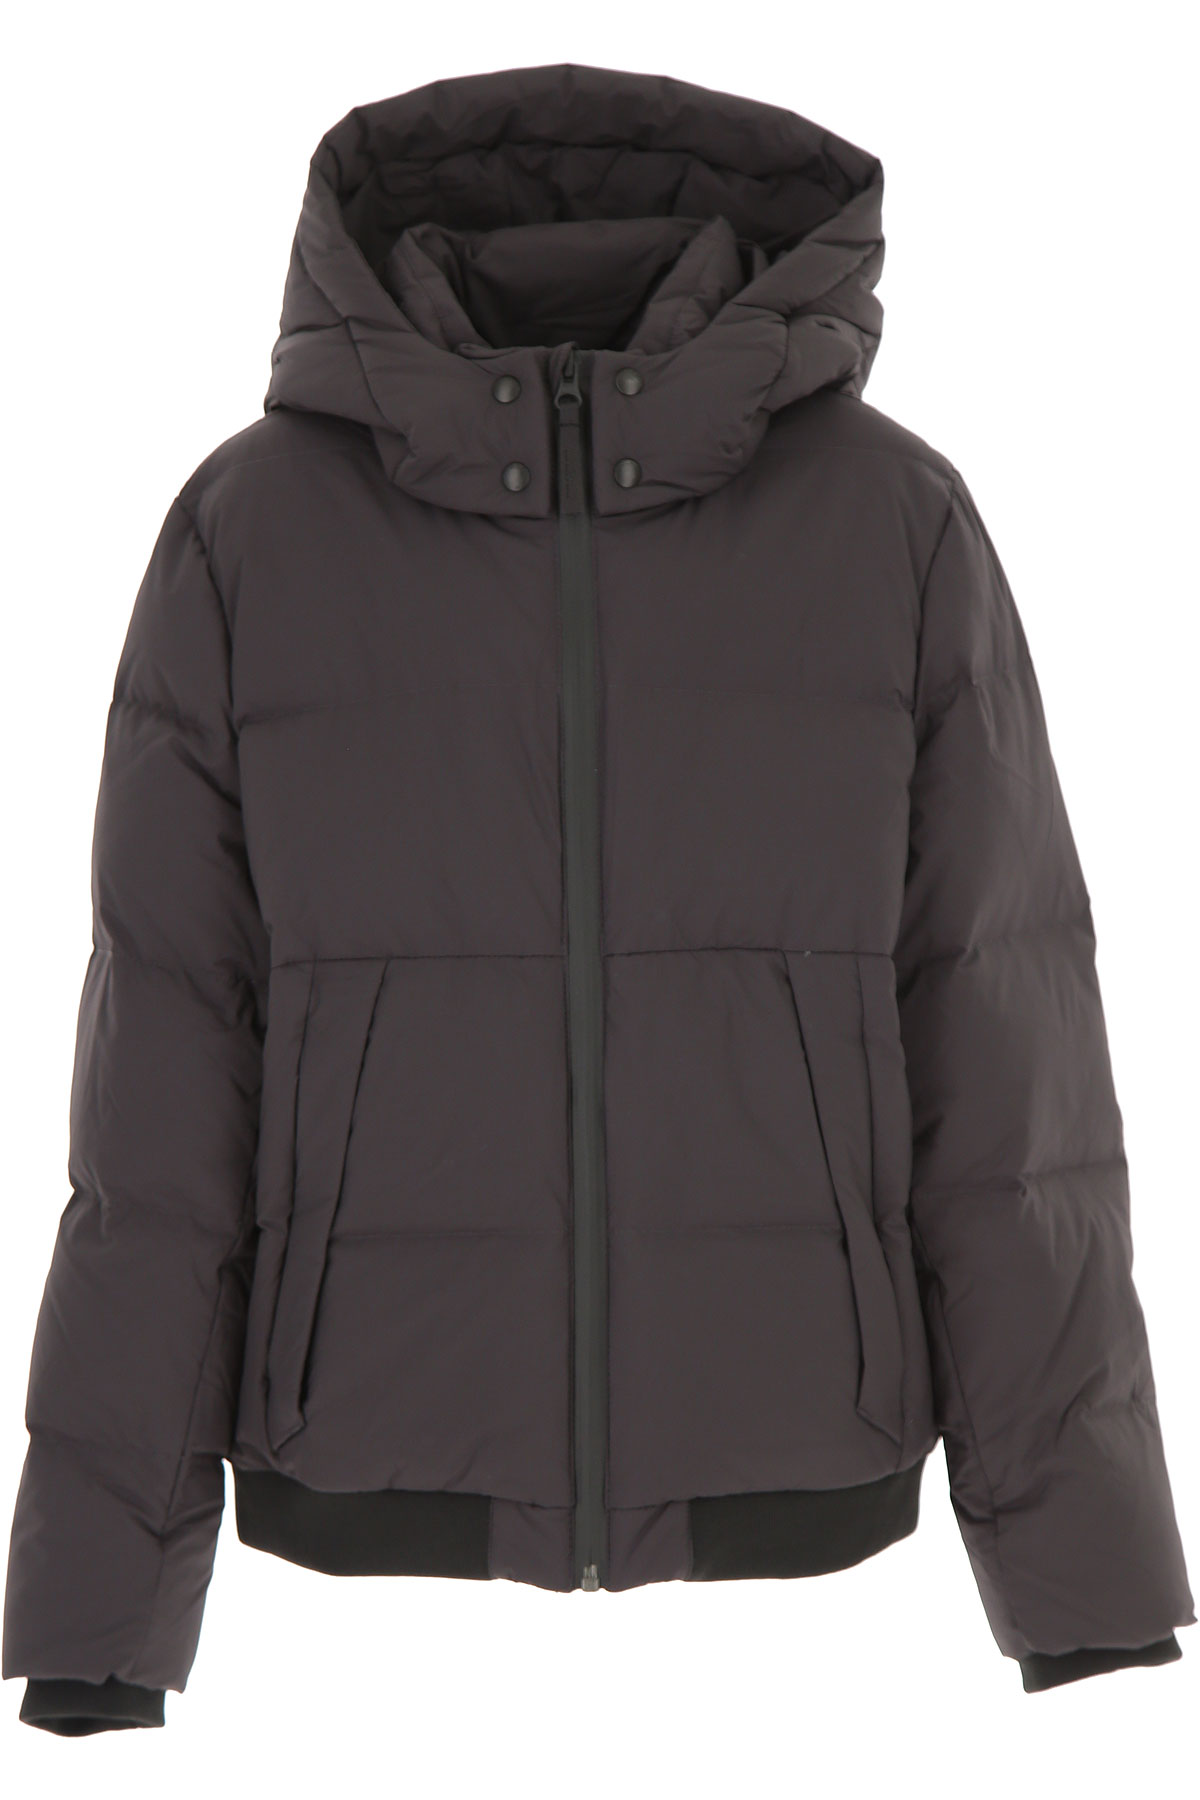 Image of Woolrich Boys Down Jacket for Kids, Puffer Ski Jacket, navy, polyamide, 2017, 10Y